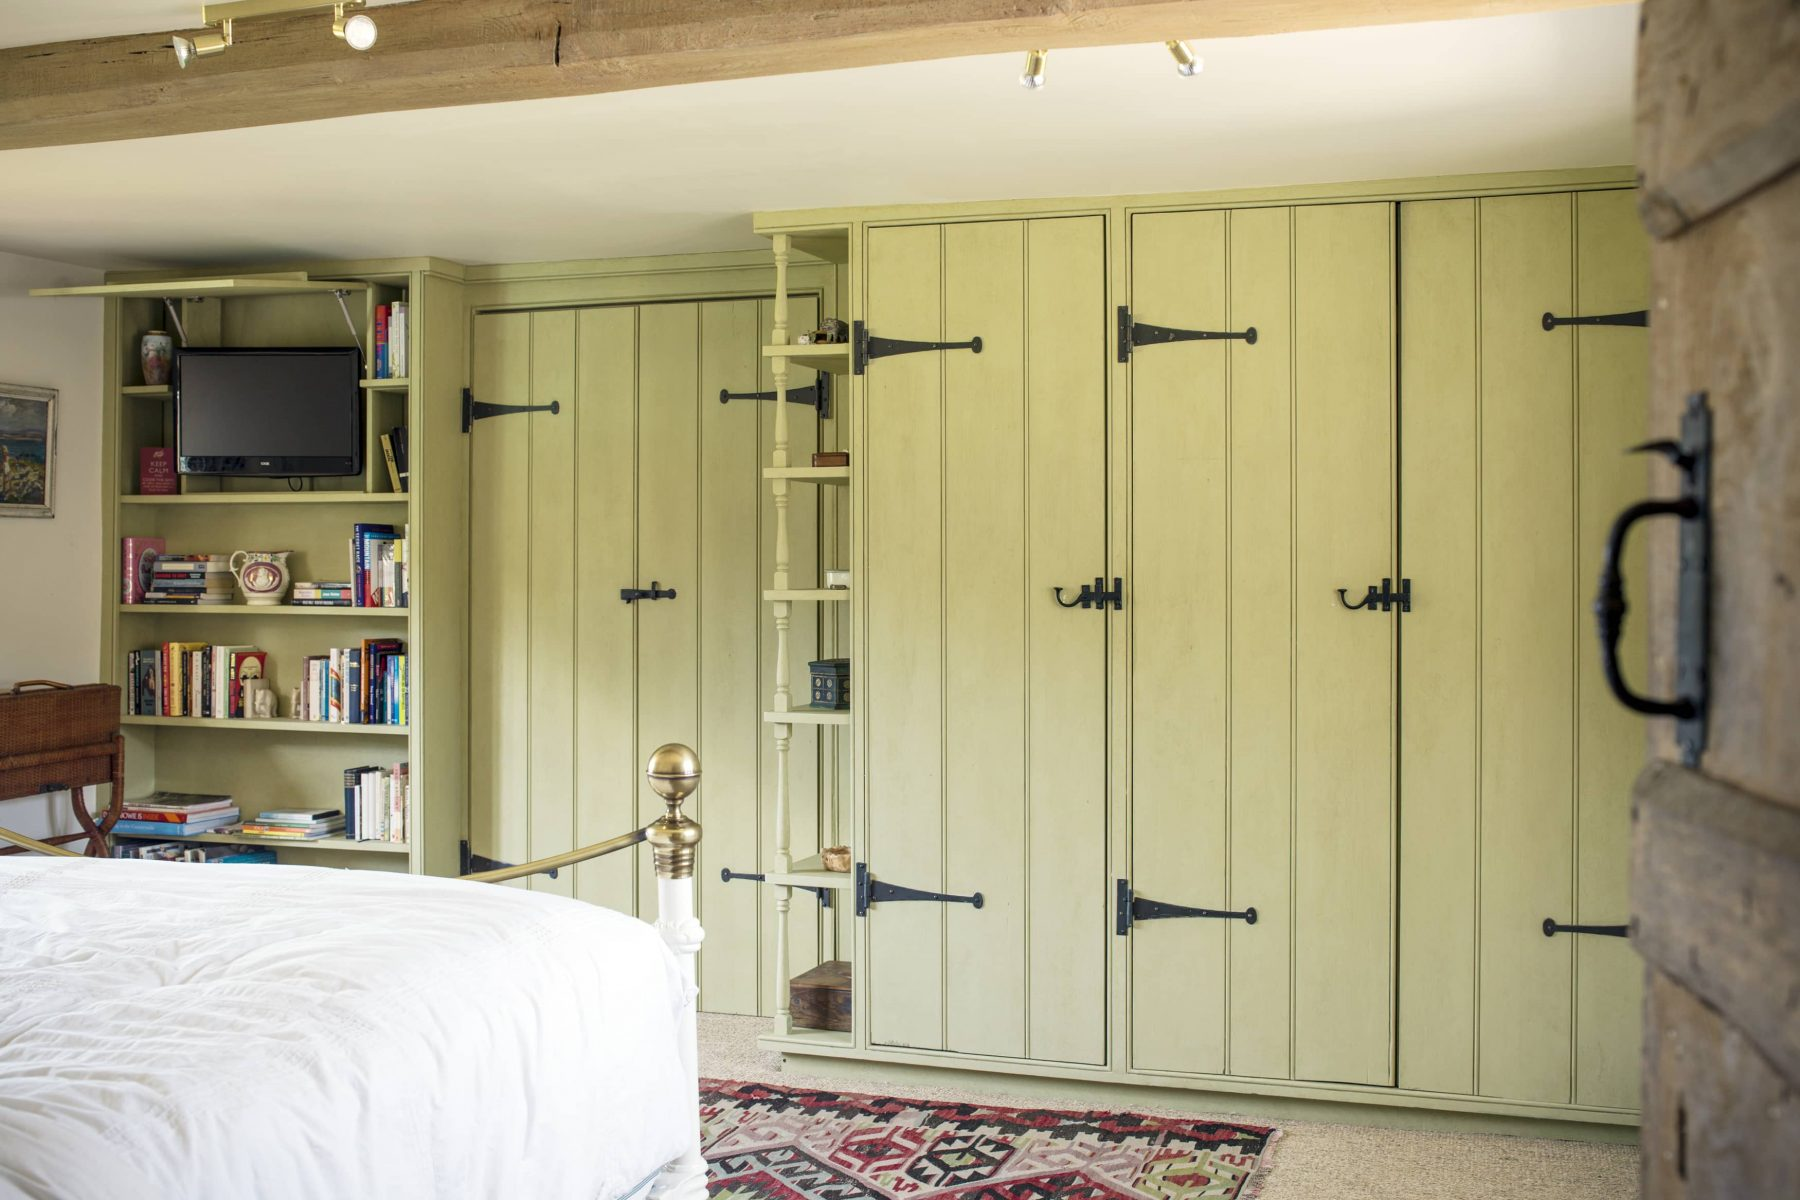 Country style wardrobe in bedroom with bespoke ironmongery